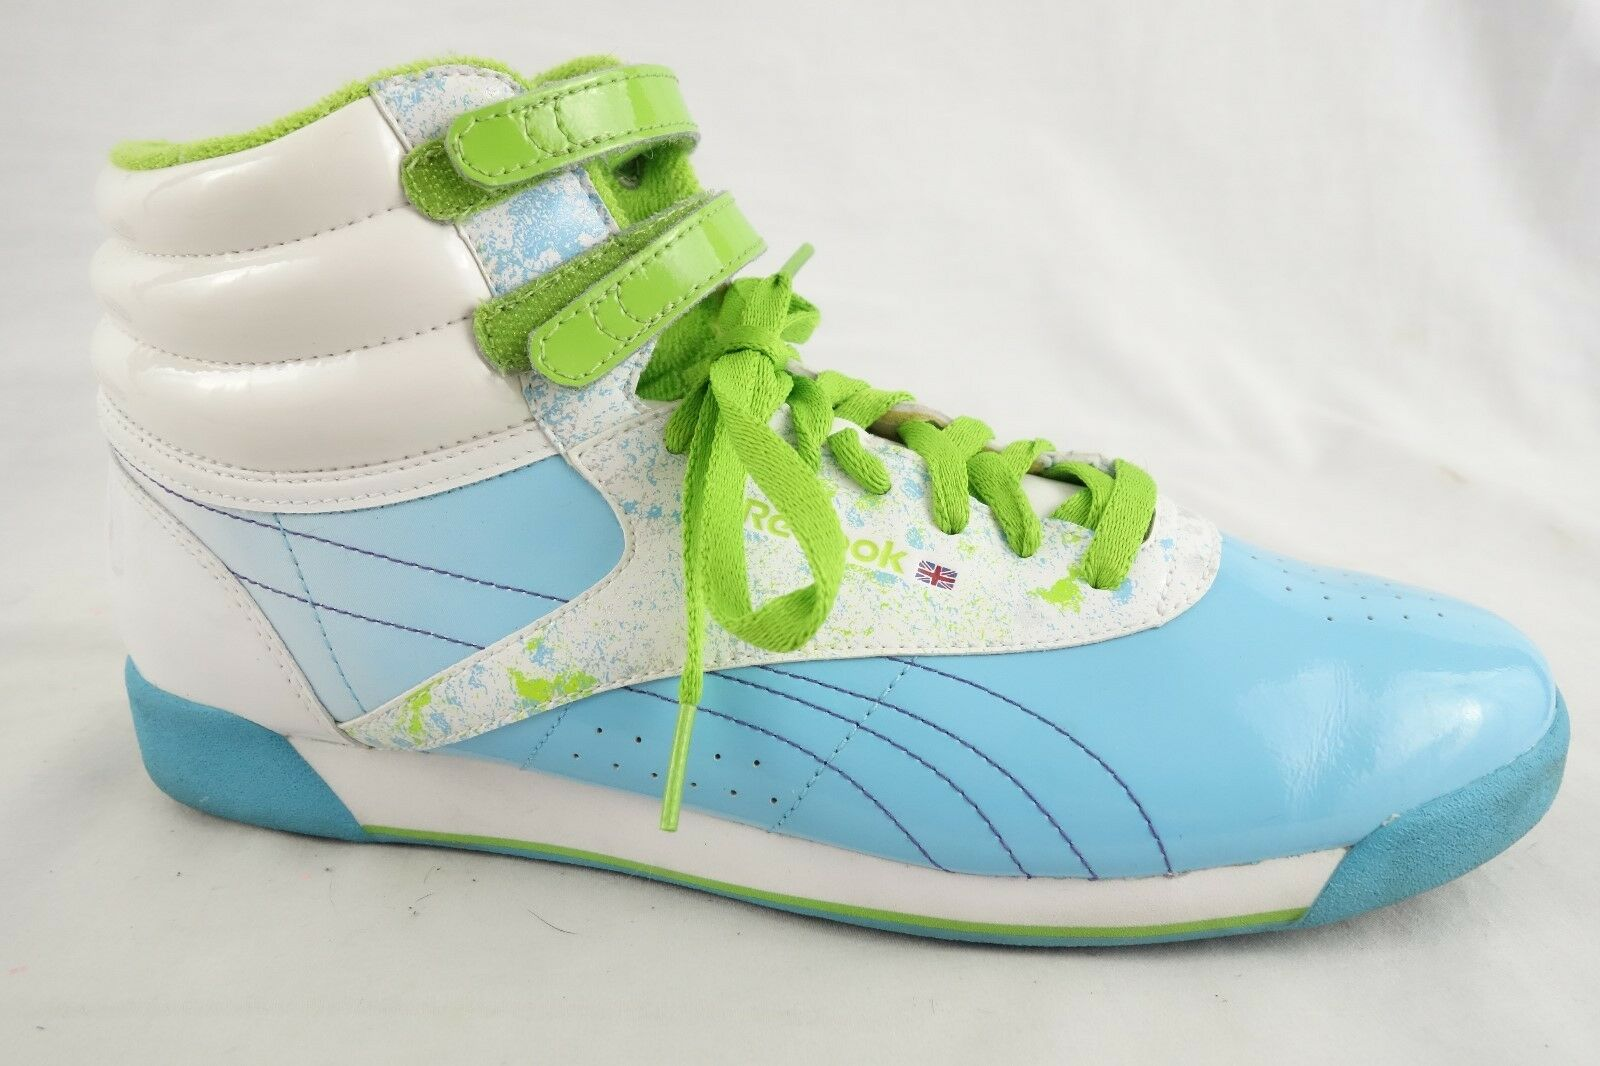 Reebok Womens shoes bluee White Green Patent Hightops Tennis Size 10.5